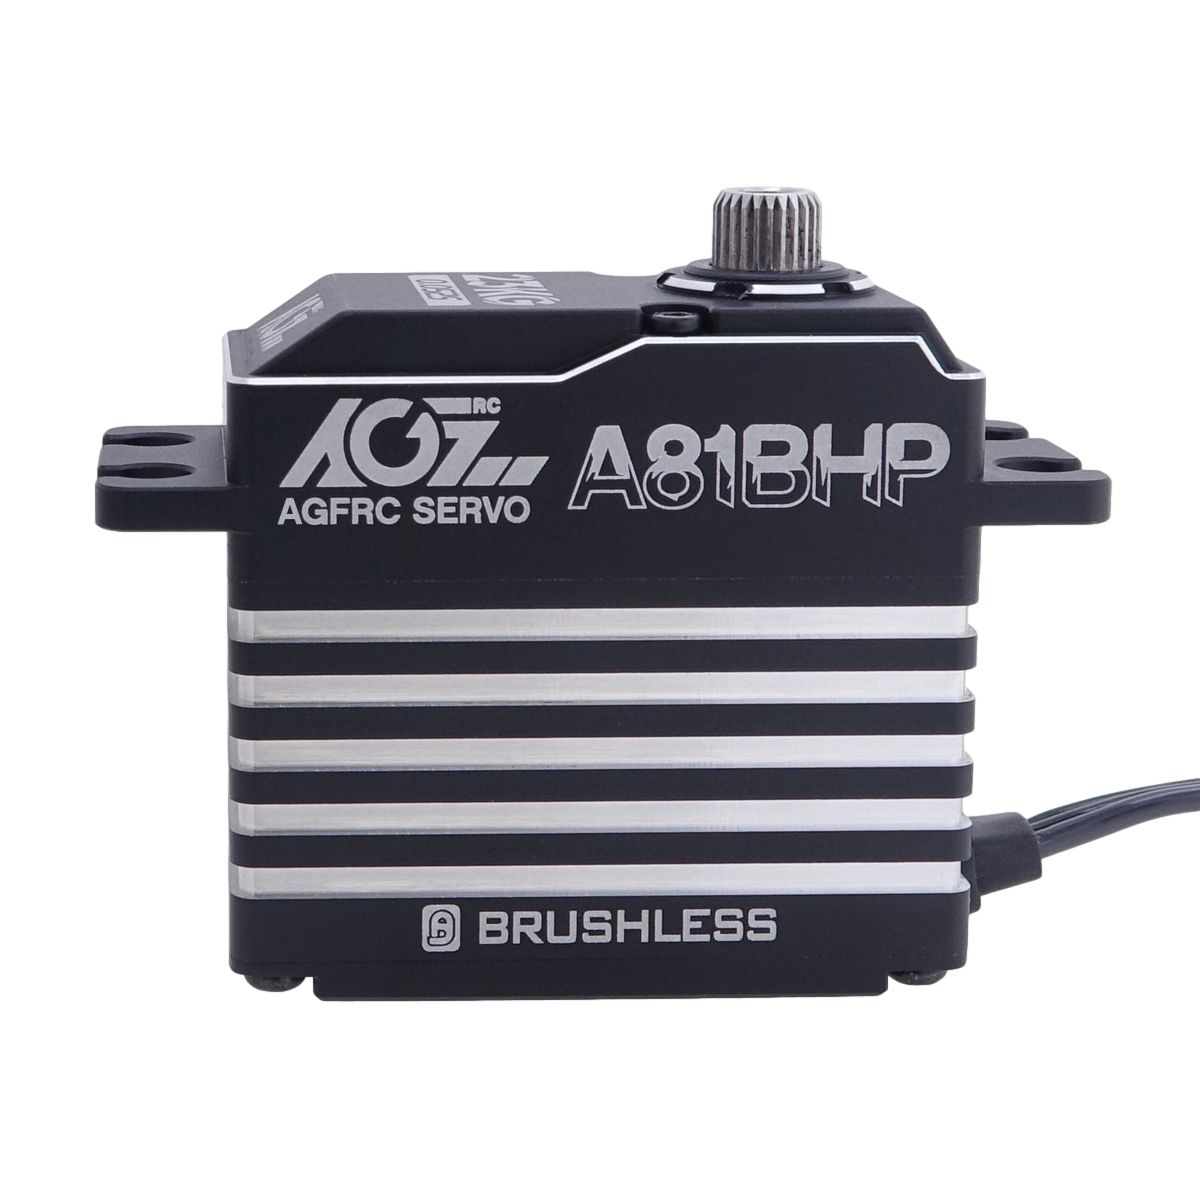 AGFRC A81BHP Hardened Patent Gears 23KG Fast Response Brushless Digital Servo for RC Racing Car Helicopter Aircraft Boat